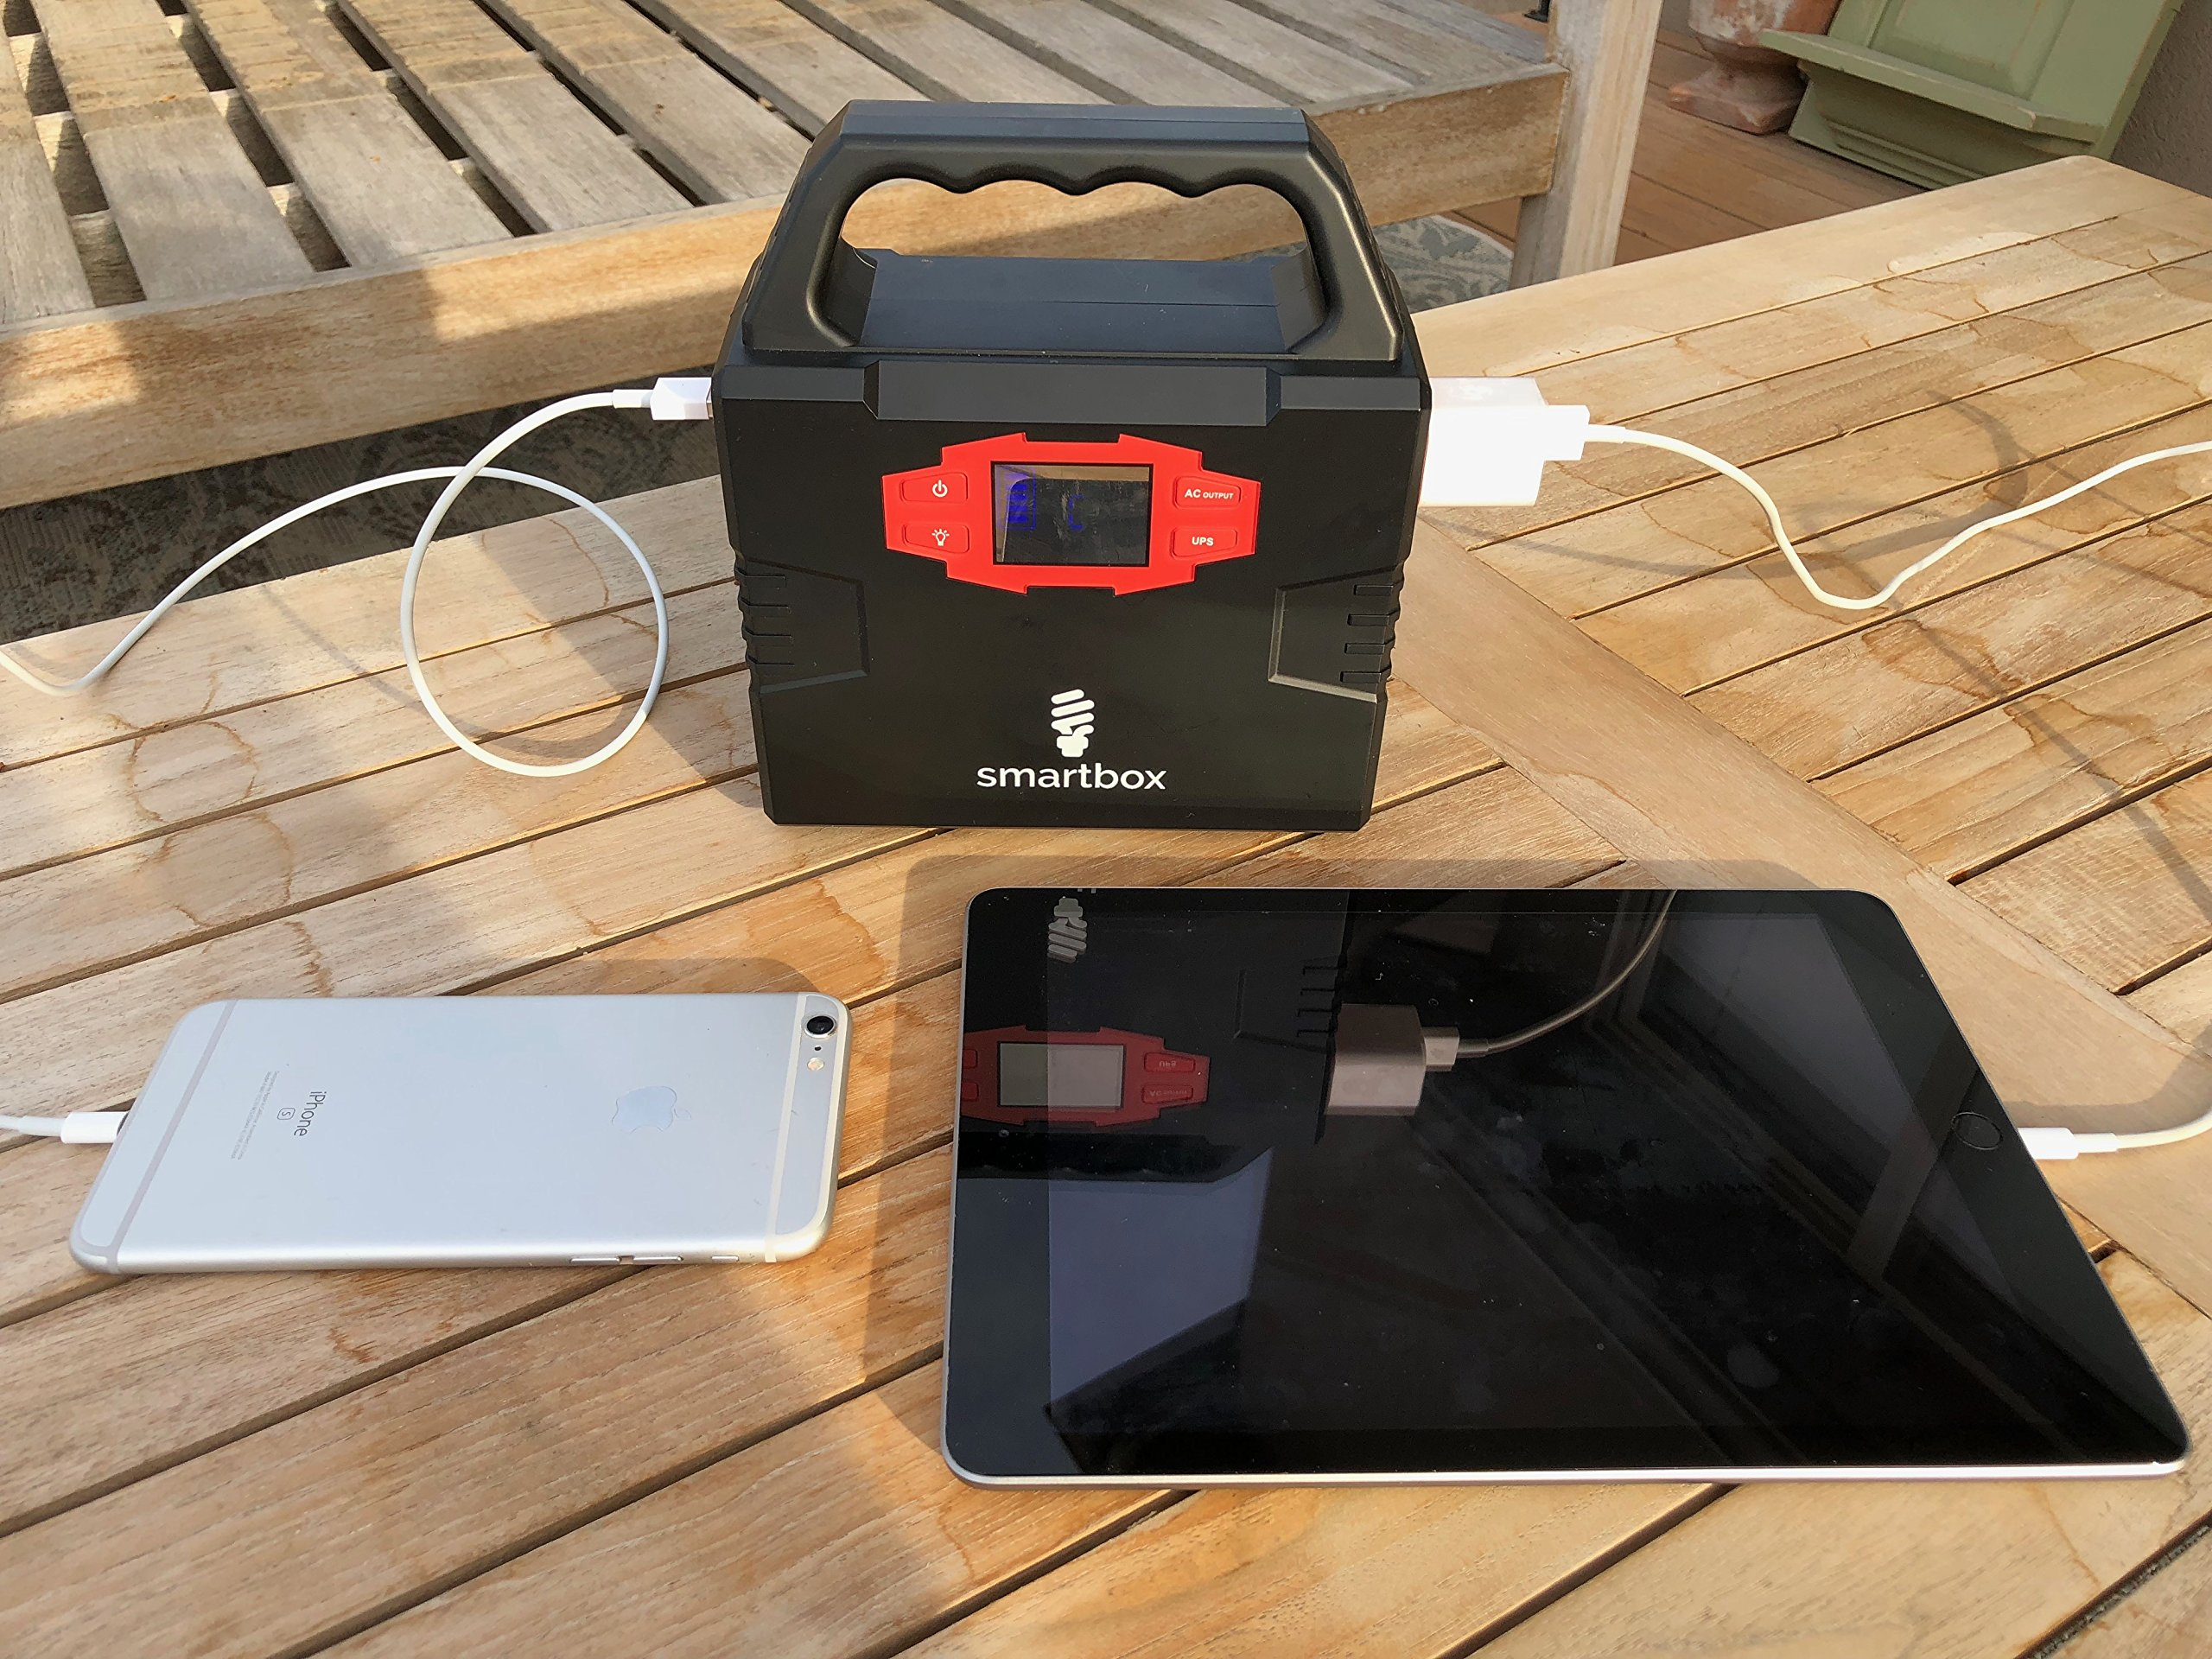 Smartbox Powerful Solar Generator -Portable Power Charging Station With Multiple USB & AC Outlets-100-Watt Emergency Solar Battery Charger With Ultra-Bright LED Light For Outdoor Activities by Smart Box (Image #3)